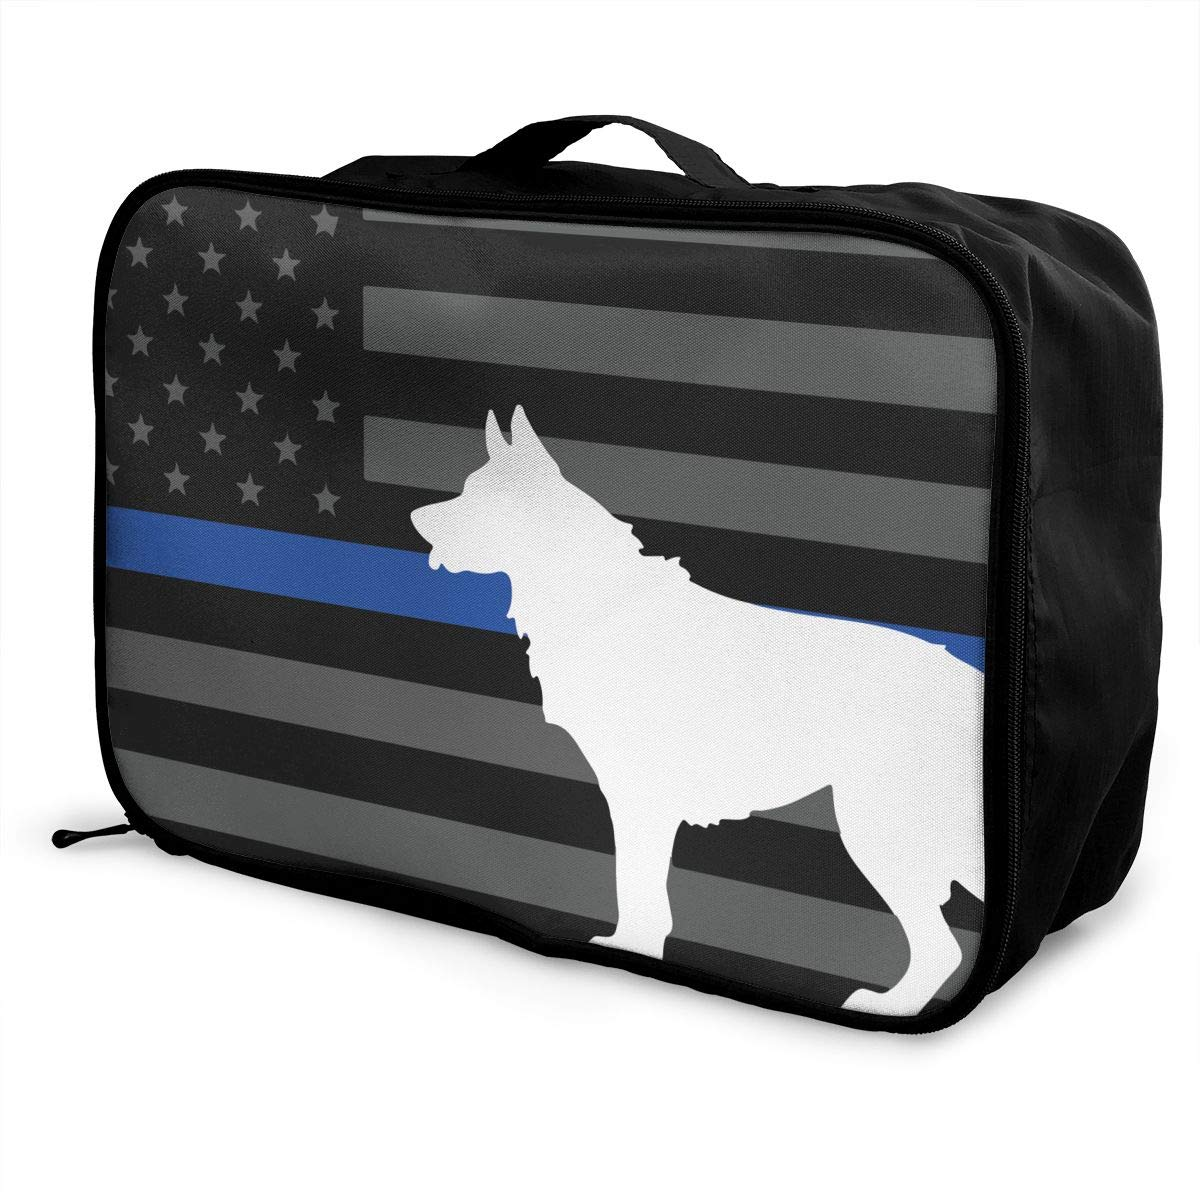 Police Dog Thin Blue Line Flag Lightweight Large Capacity Portable Luggage Bag Travel Duffel Bag Storage Carry Luggage Duffle Tote Bag